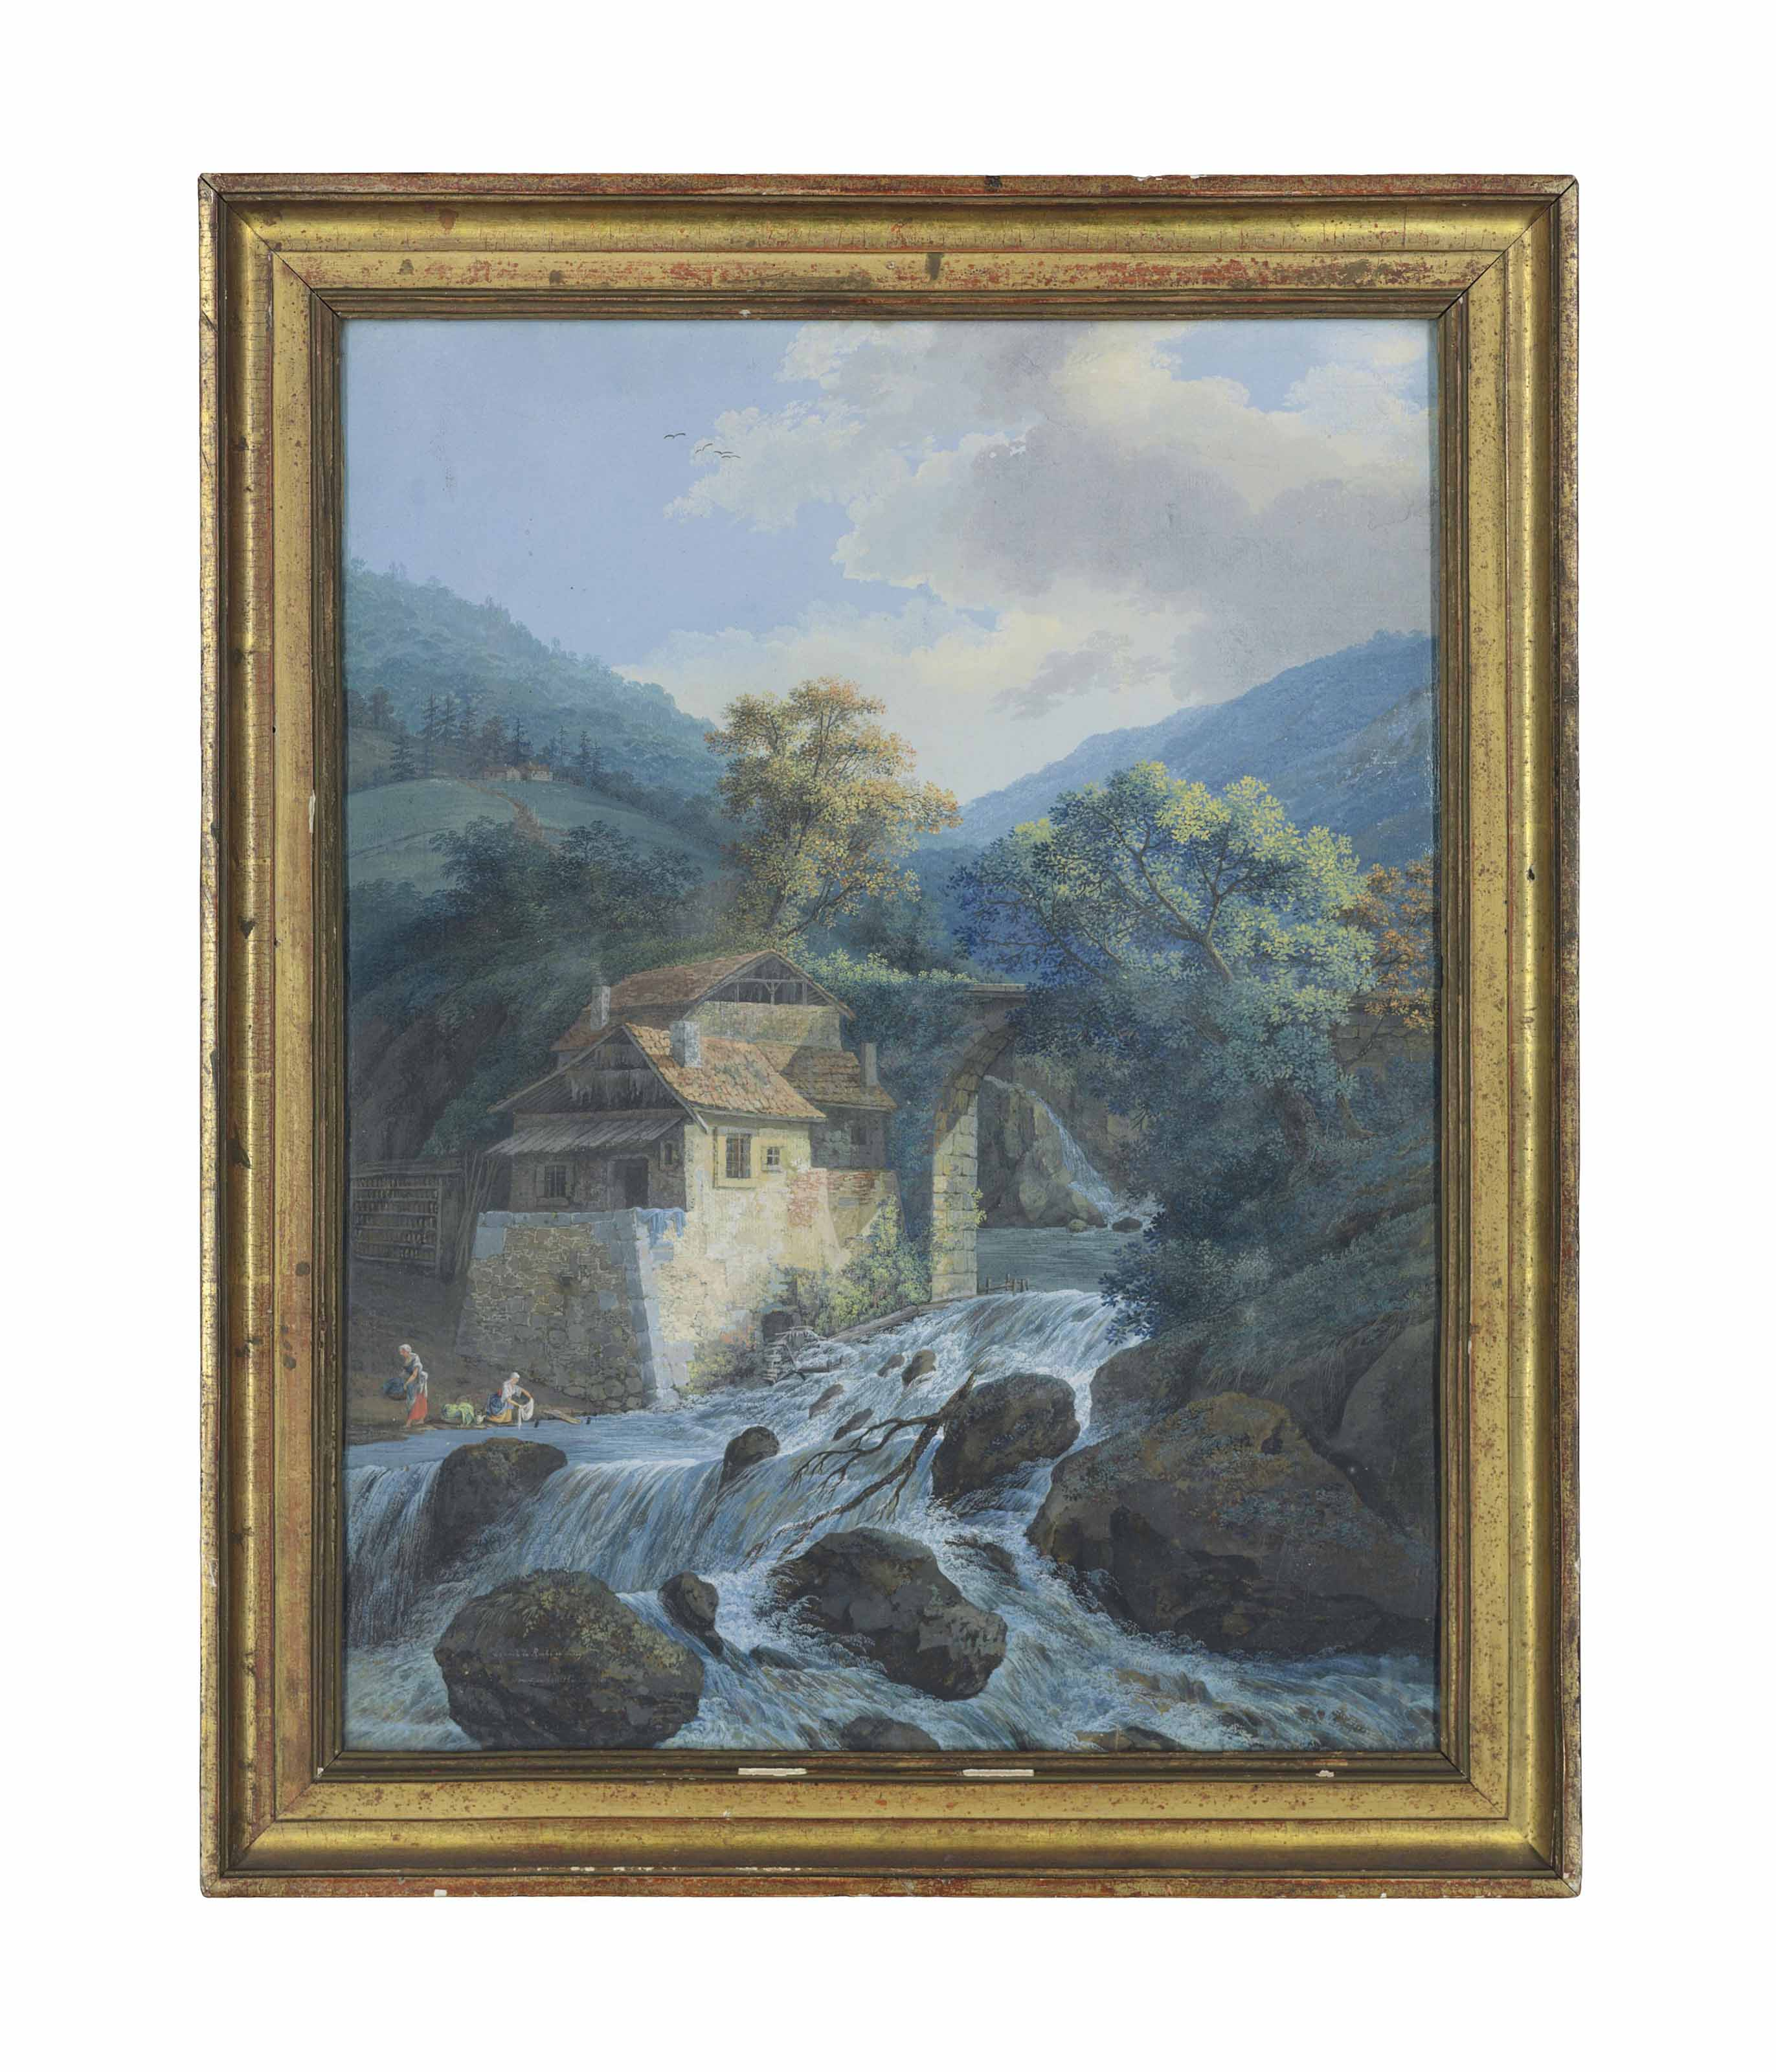 A waterfall with a mill and a bridge